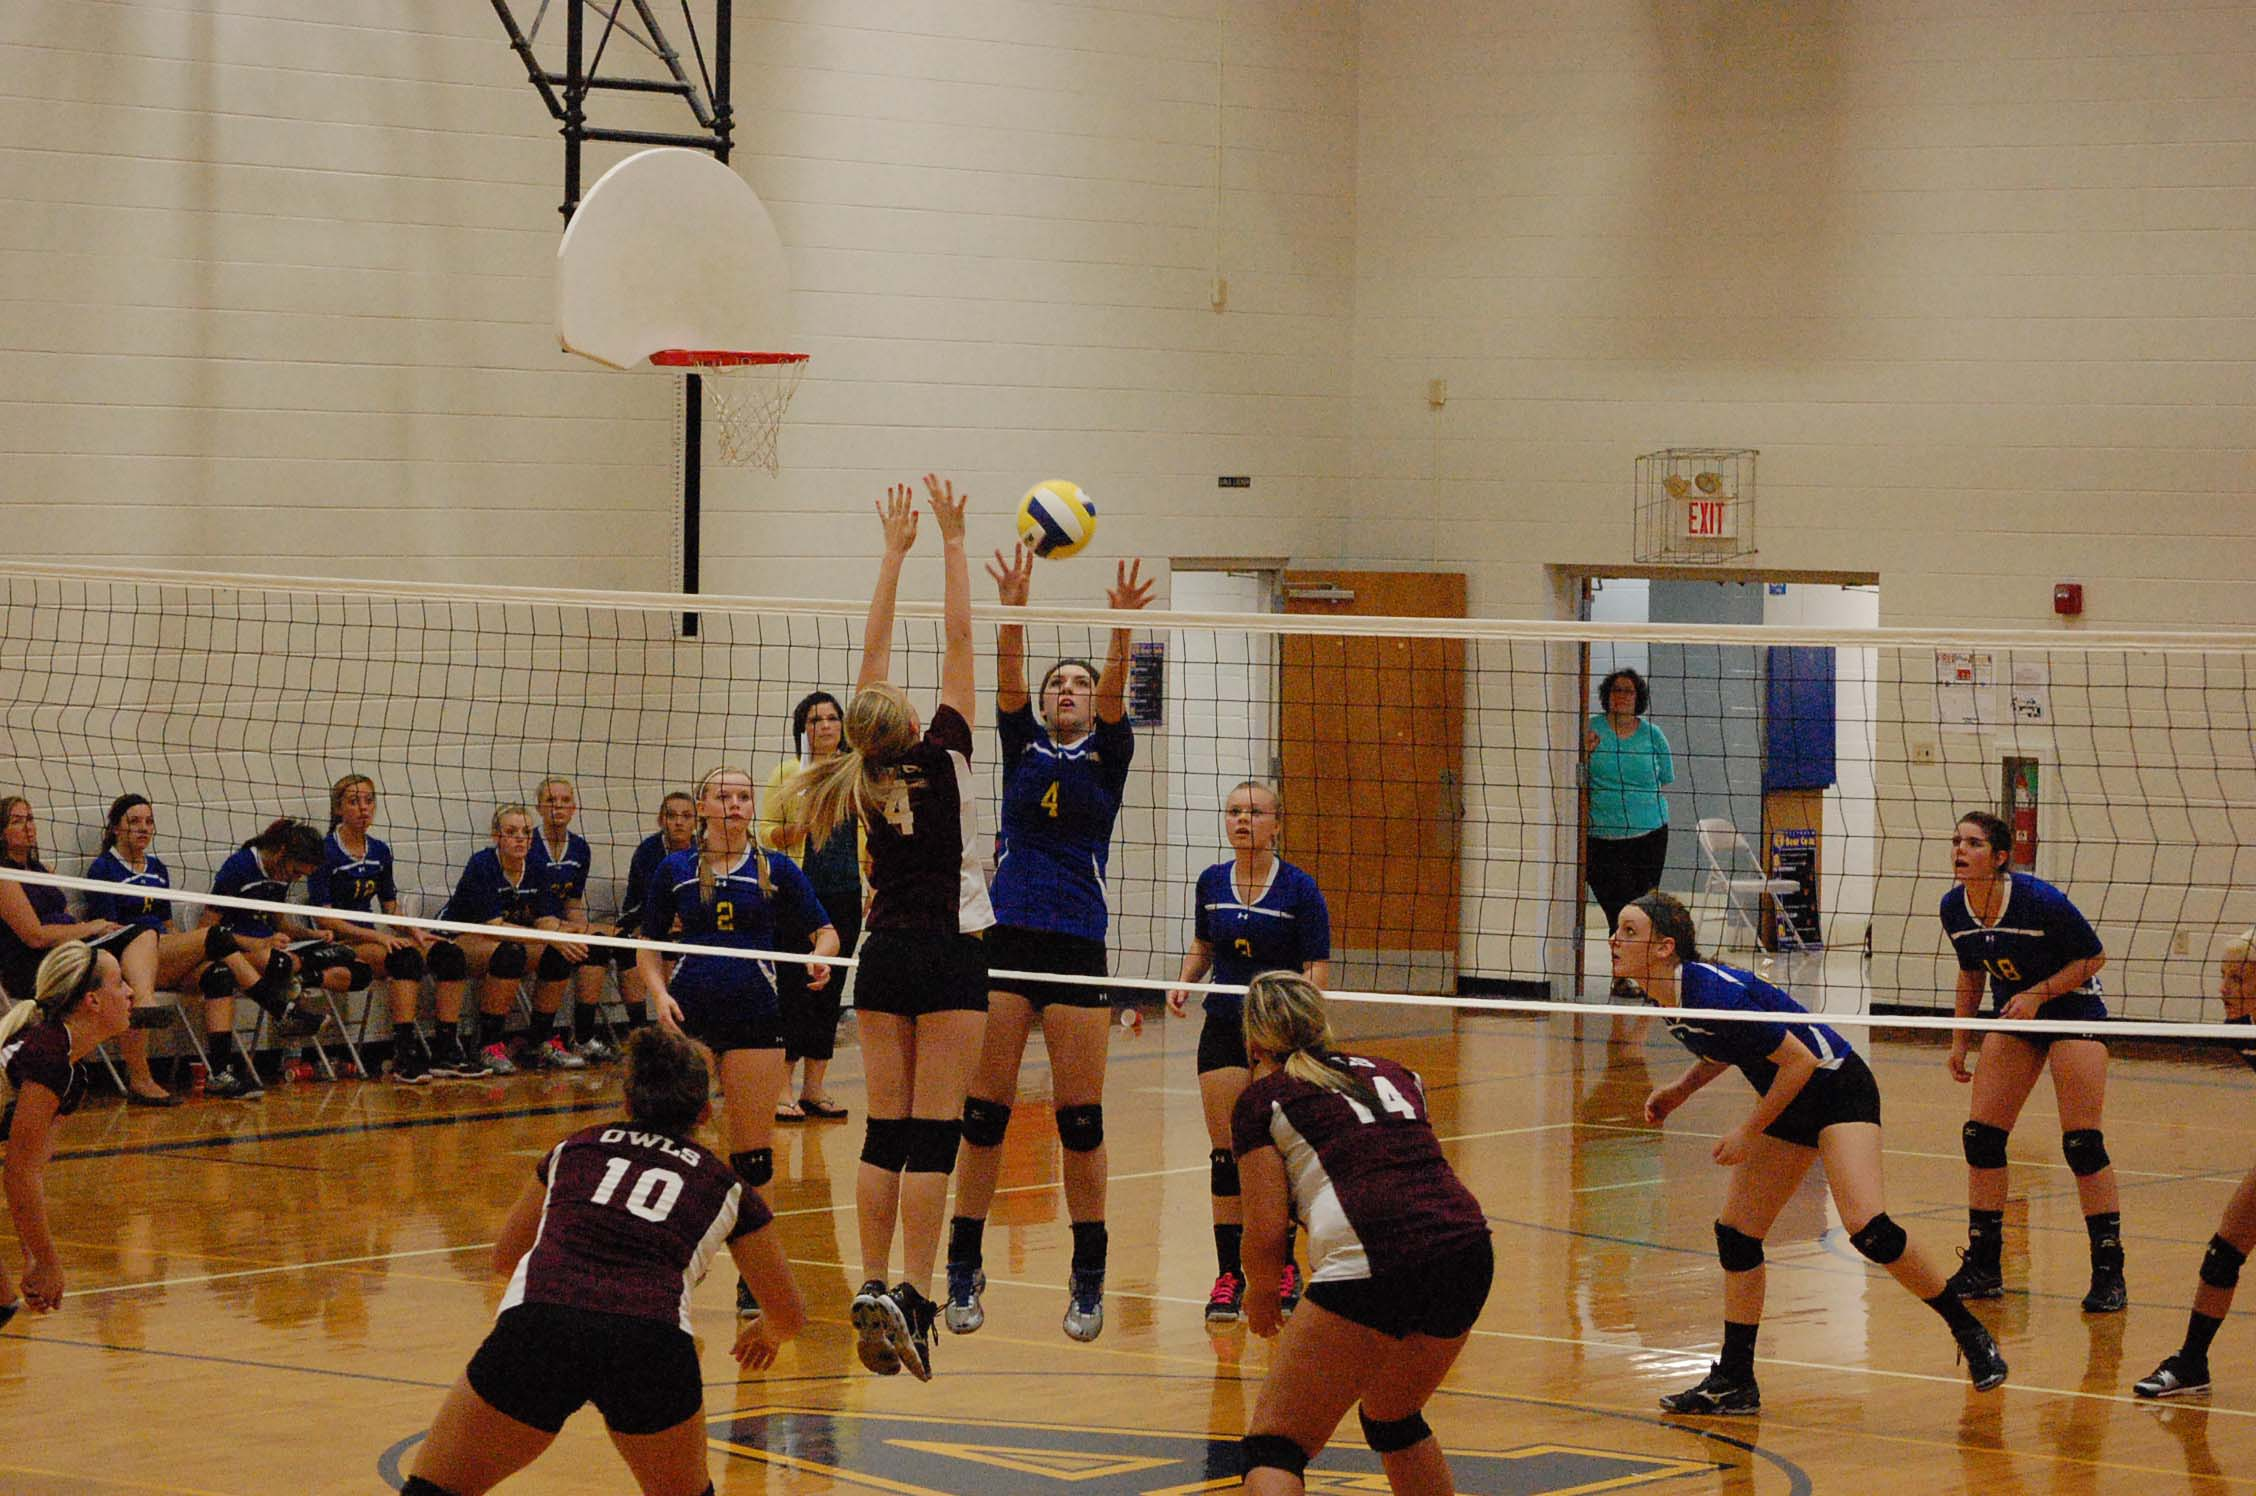 Erica Croney successfully returns the ball against Spokane in action here last Thursday night.